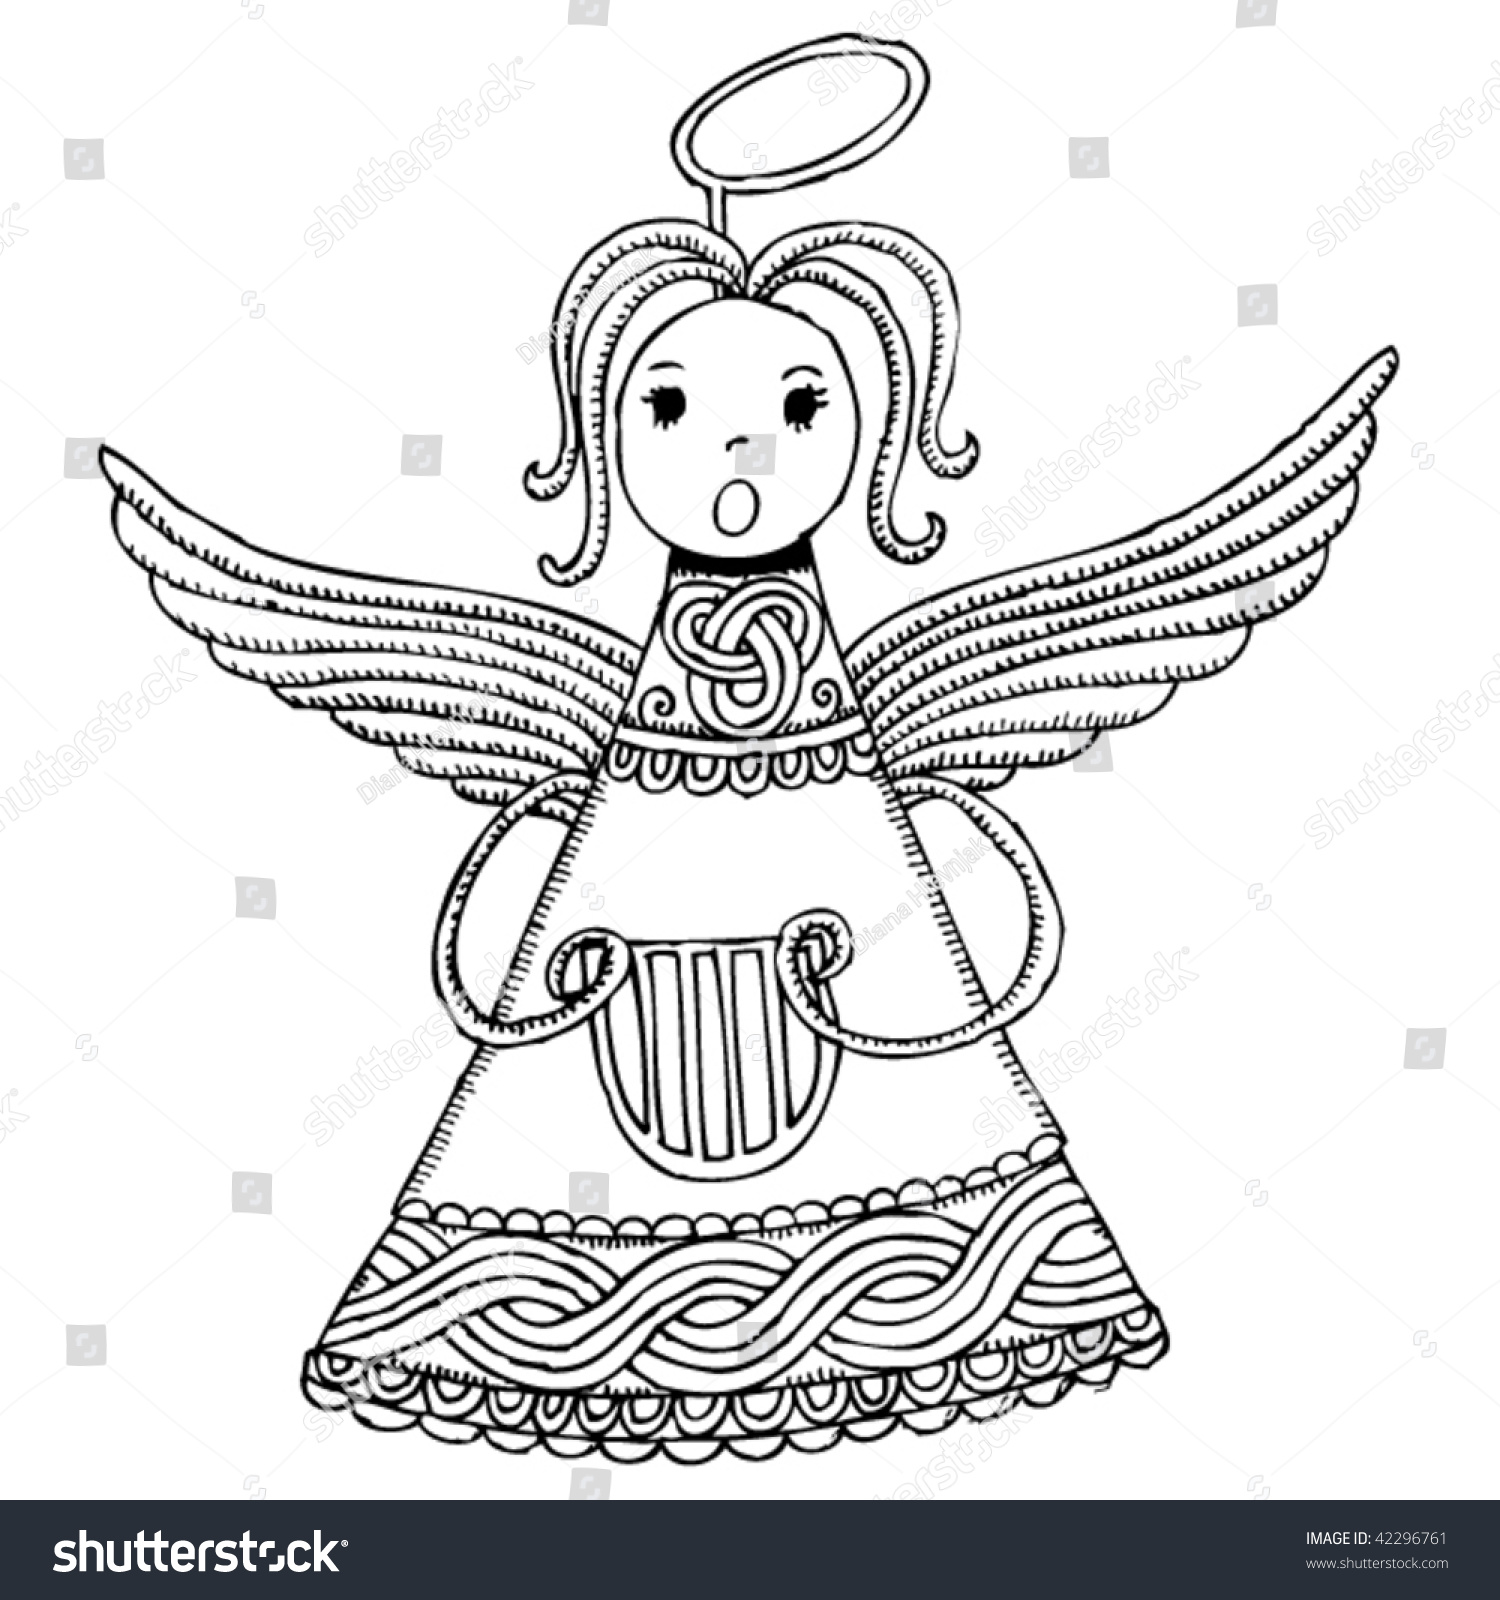 drawing of a christmas angel with croatian symbols - A Christmas Angel